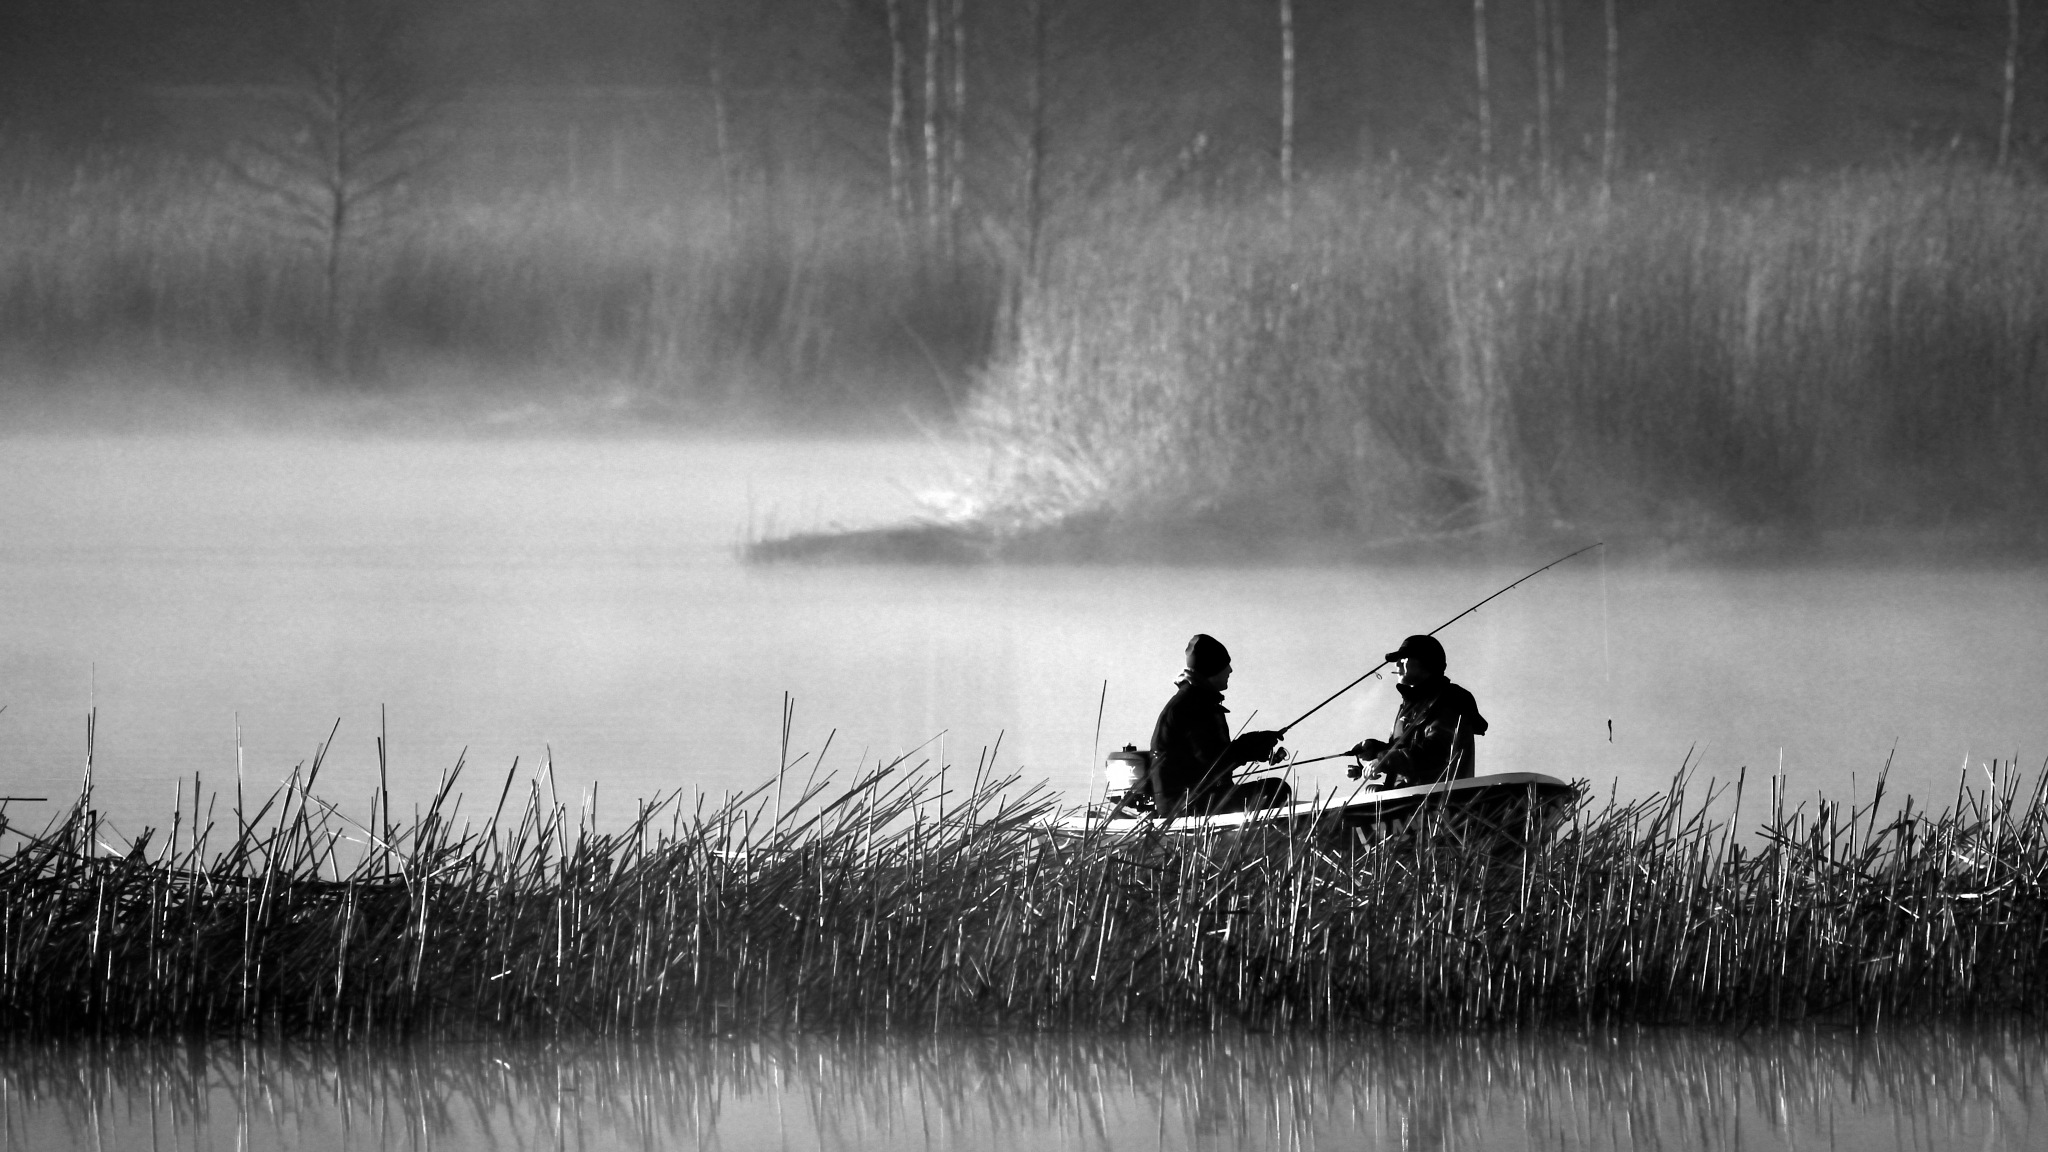 Fishermen in morning fog on the river by Art Wind